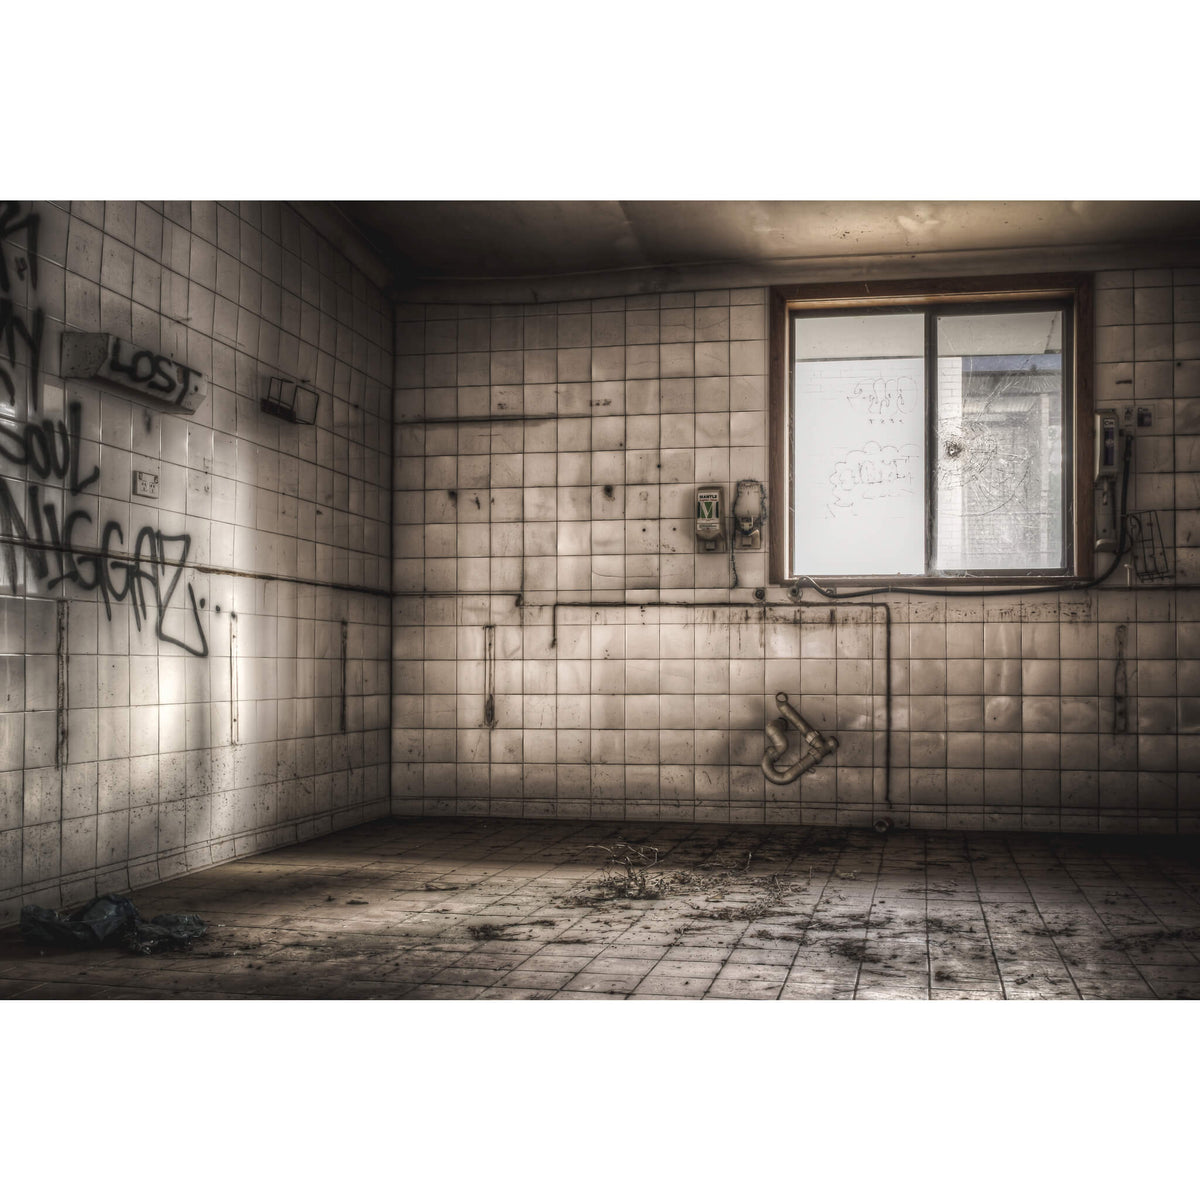 Laundry | Queen Victoria Sanitorium Fine Art Print - Lost Collective Shop